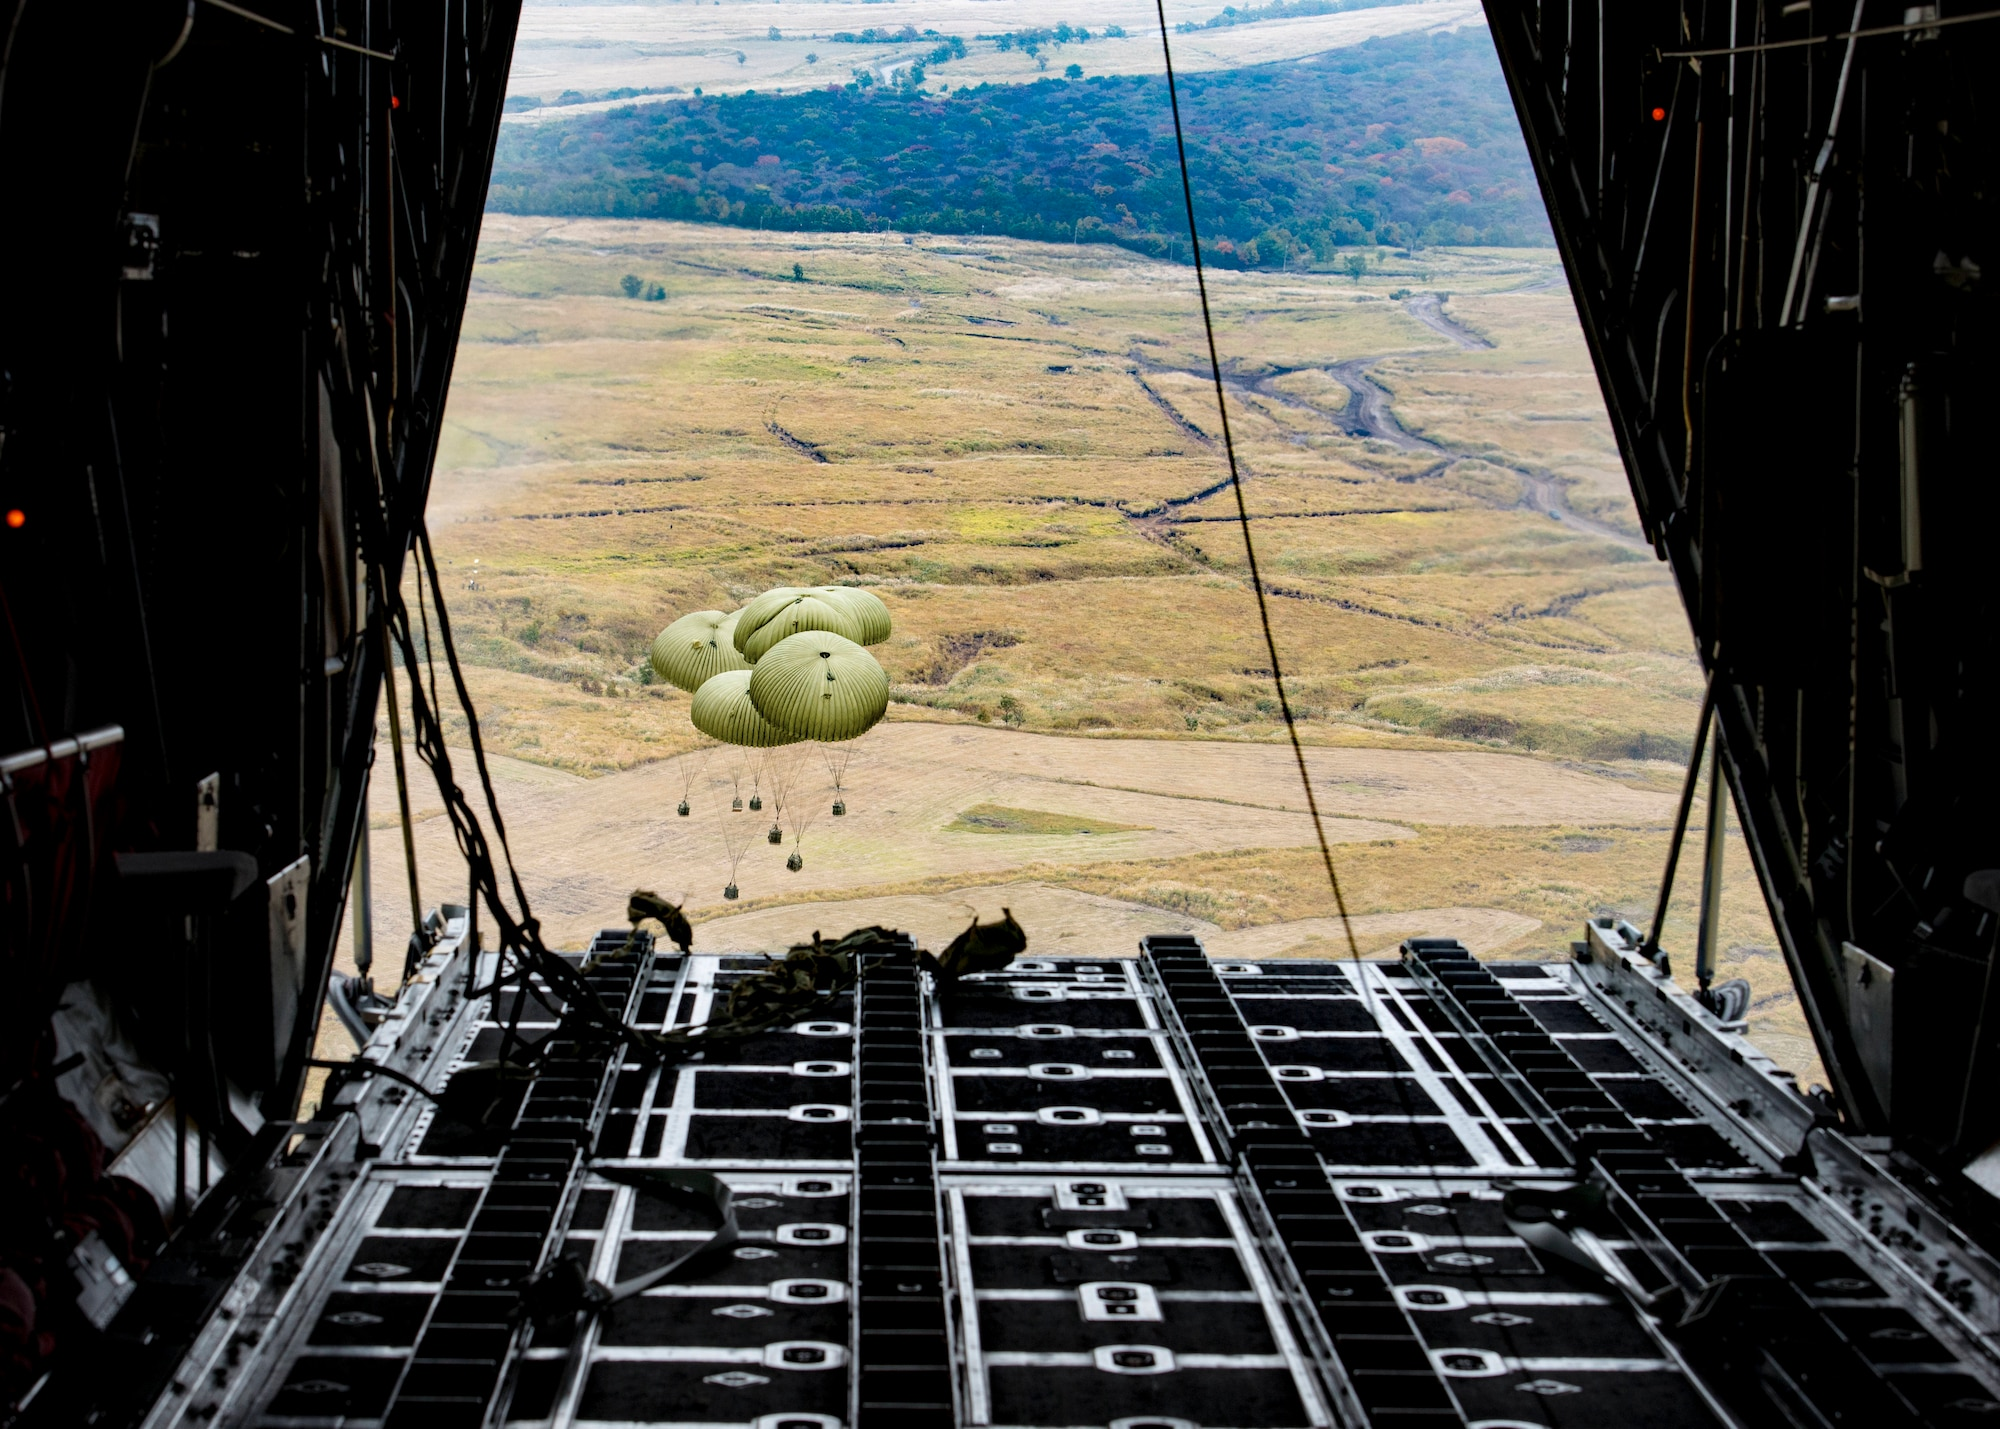 Japan Ground Self-Defense Force container delivery system bundles parachute to a drop zone after being dropped out of a C-130 Hercules during Keen Sword 2017, Nov. 10, 2016, over the Kyushu prefecture, Japan. Keen Sword is designed to practice the critical capabilities to support the defense of Japan, and to respond to a potential crisis or contingency in the Indo-Asia-Pacific region. (U.S. Air Force photo by Airman 1st Class Donald Hudson/Released)